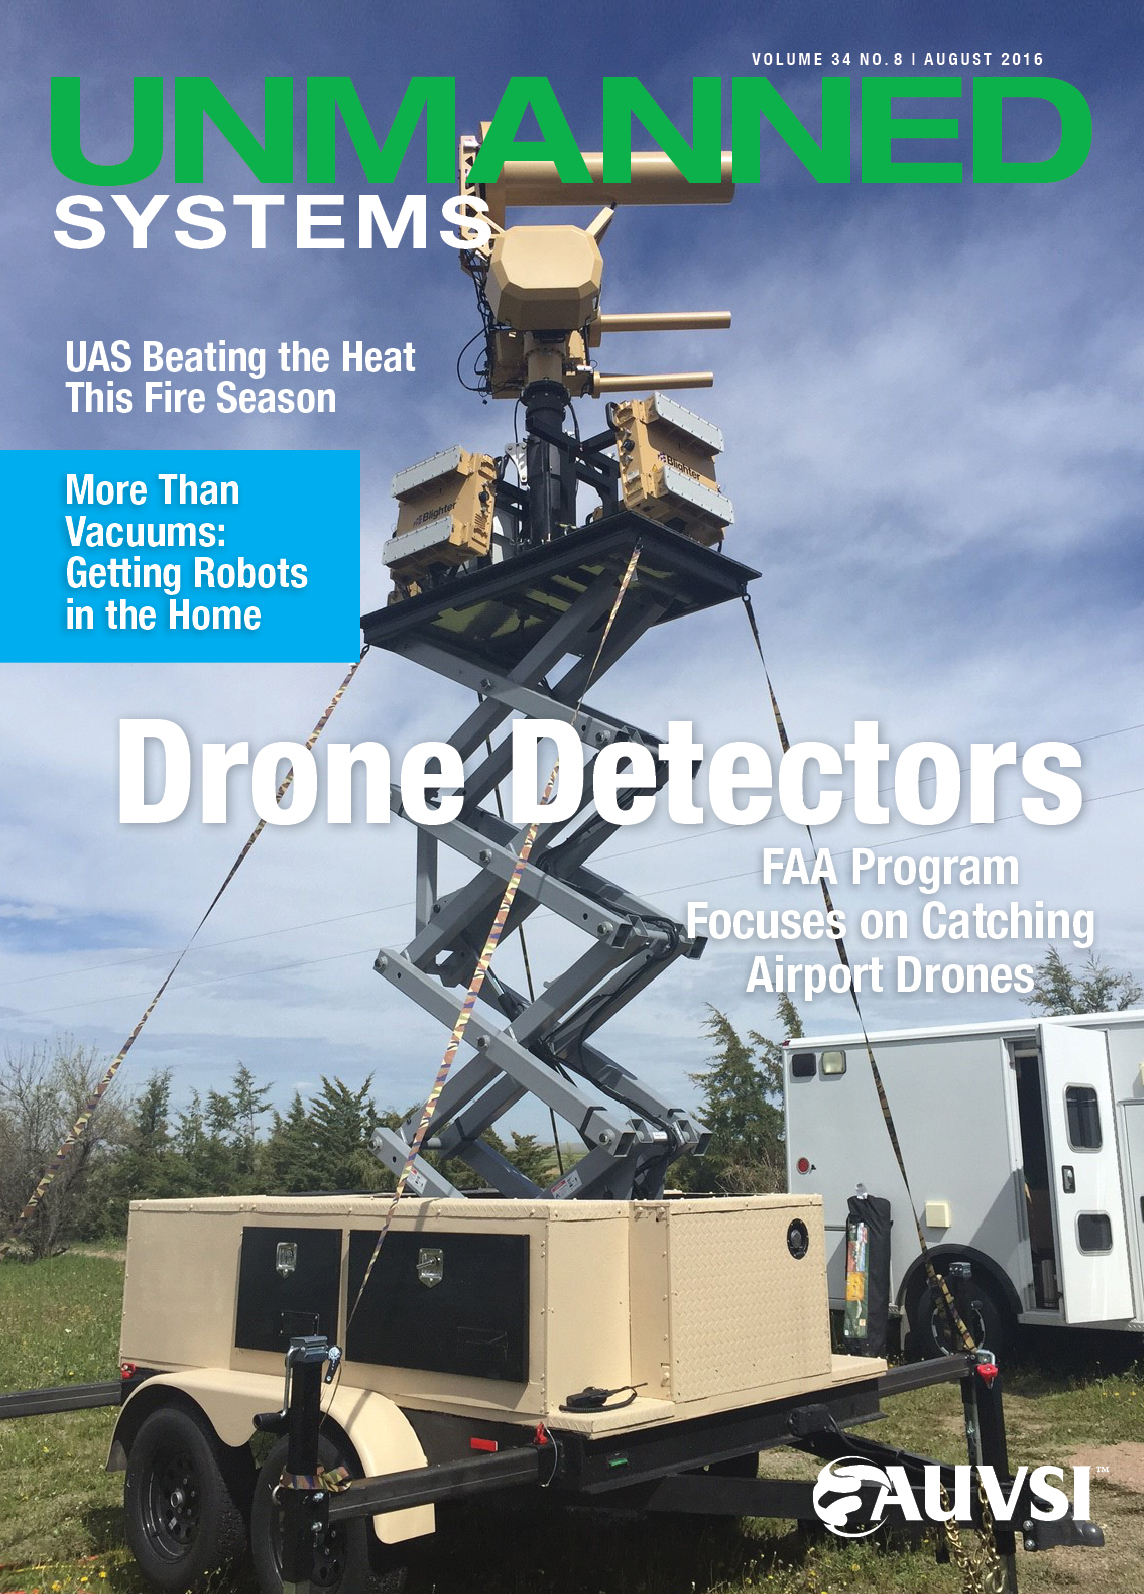 Unmanned Systems Magazine - August 2016